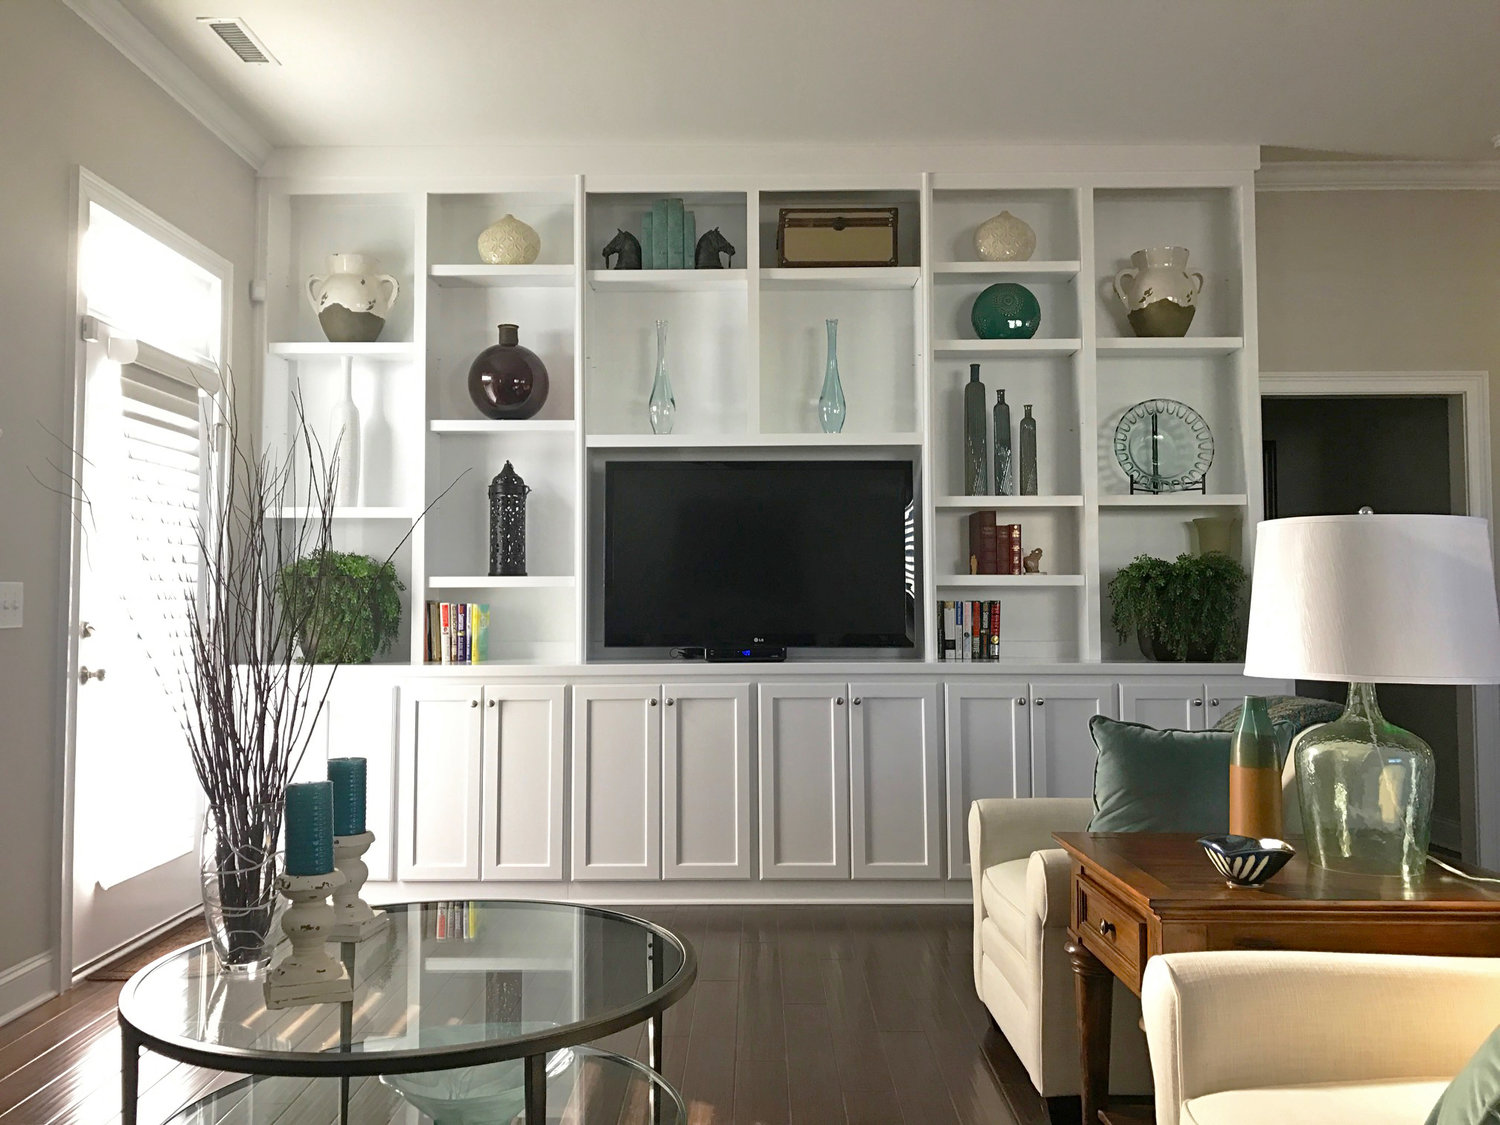 Built-In with Adjustable Shelves, TV Opening, Crown, and Shaker Doors